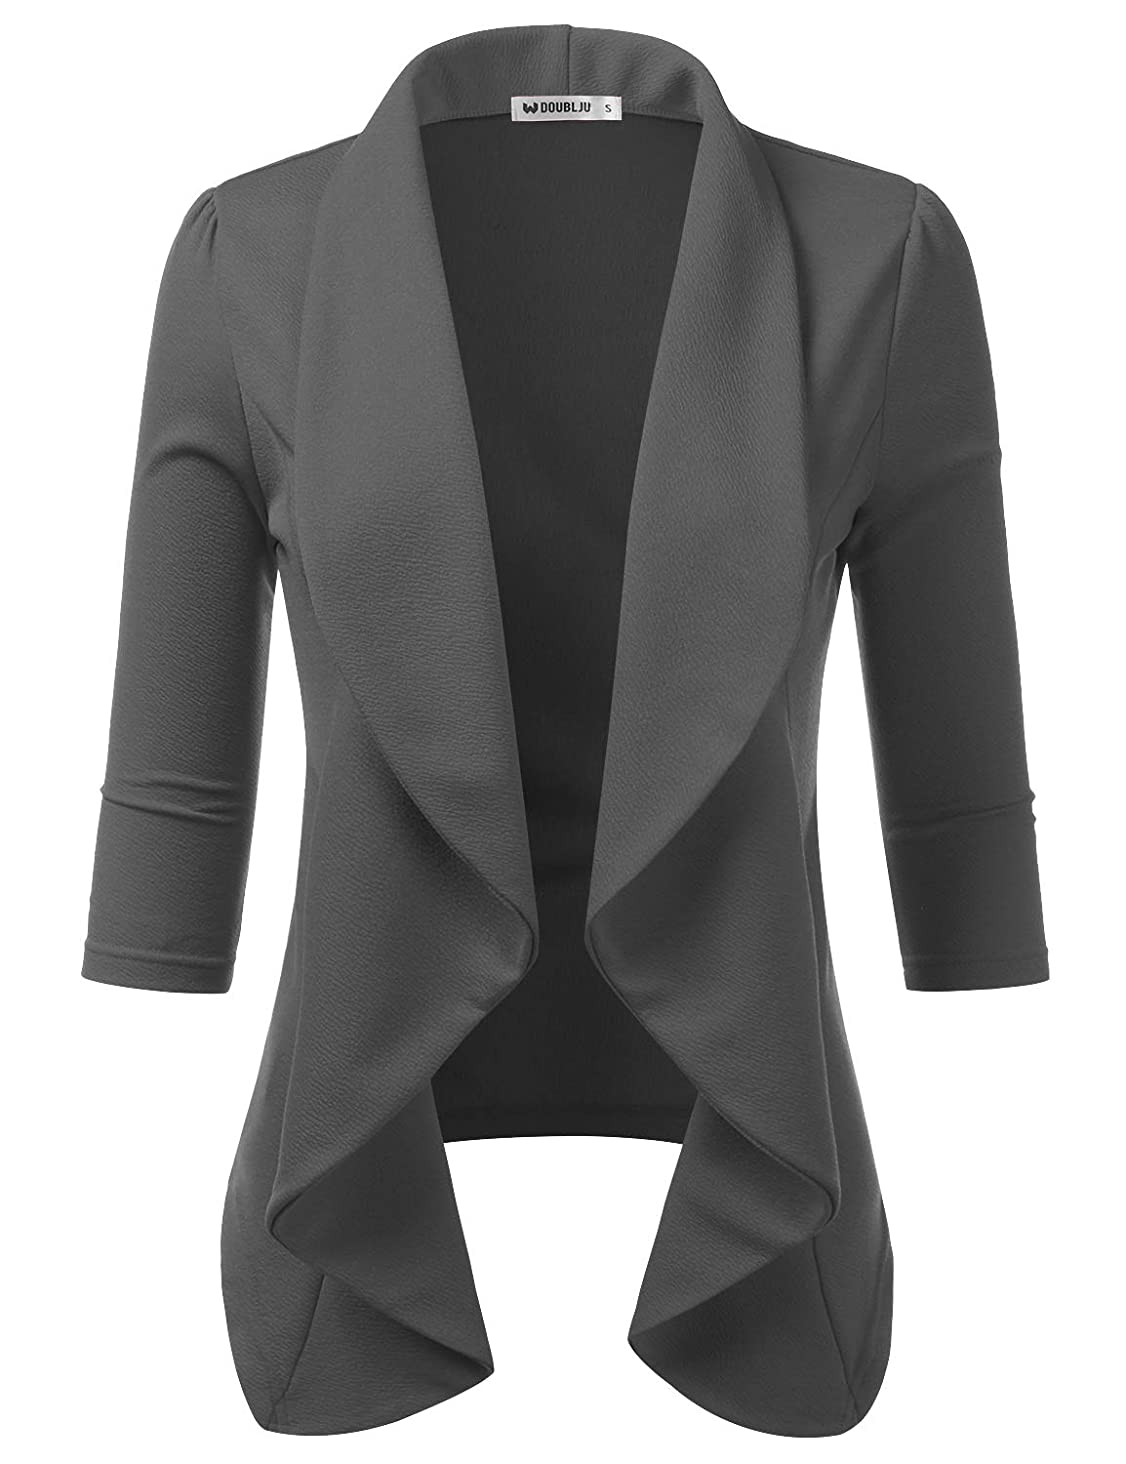 Doublju Womens Lightweight Thin 3/4 Sleeve Open Front Blazer with Plus Size